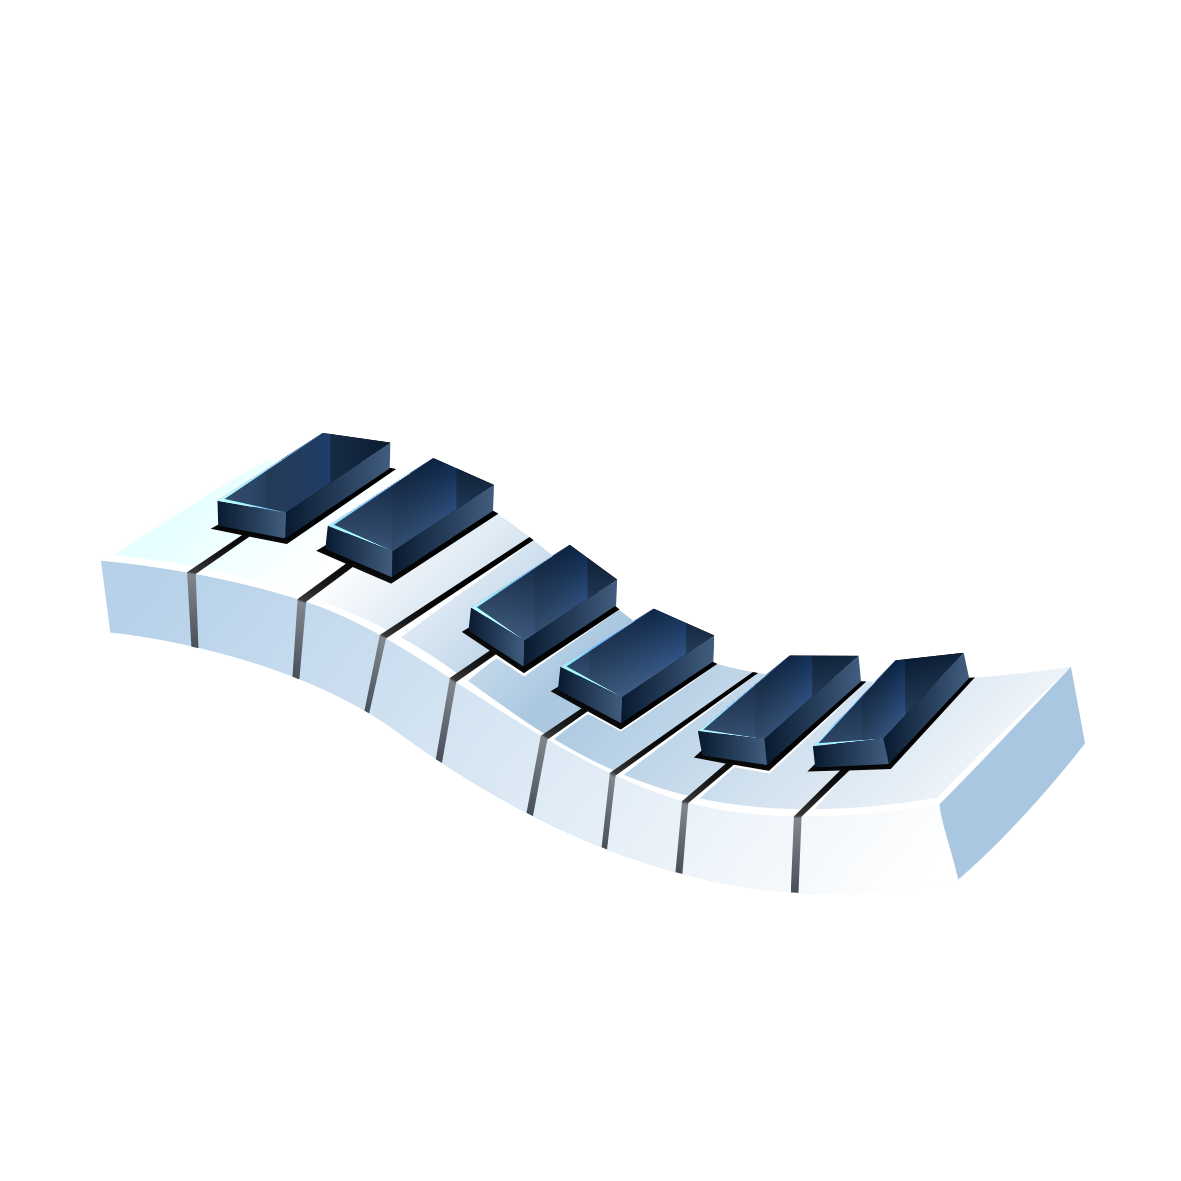 Drawing keyboard electric. Piano musical black and